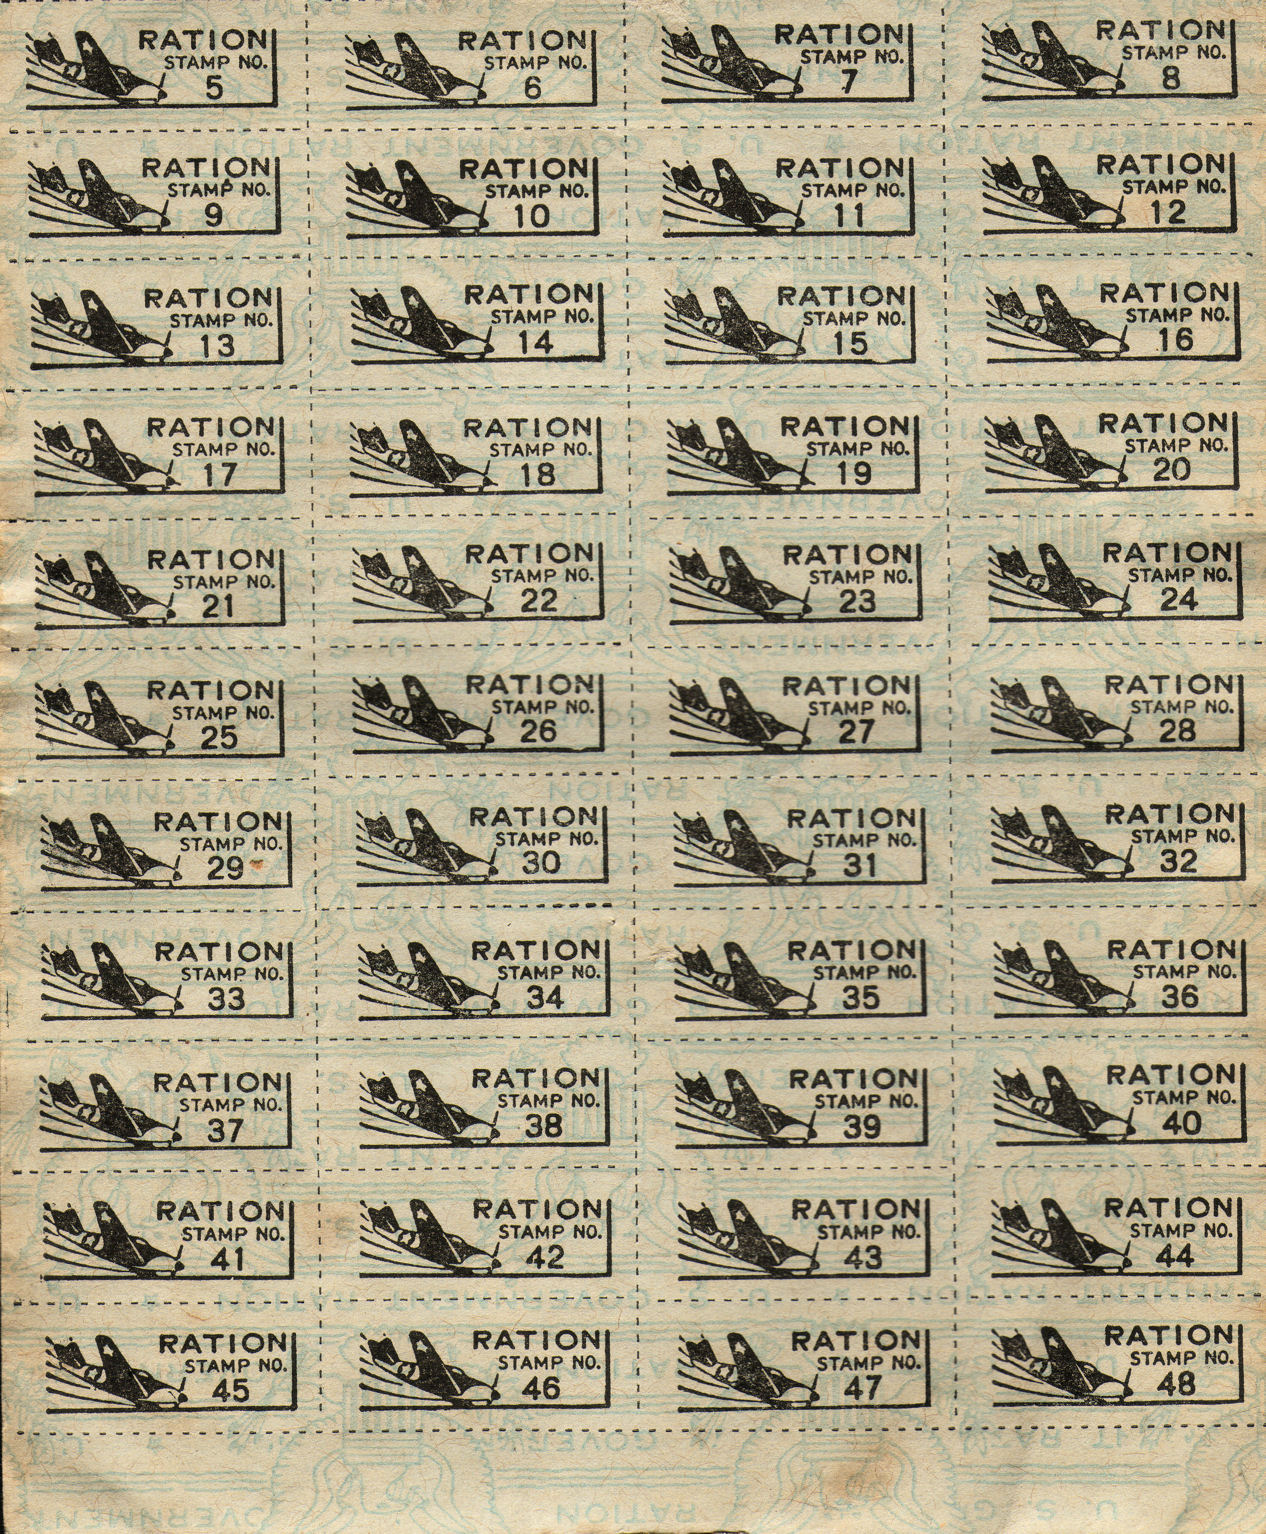 File:WWII USA Ration Stamps 1.jpg - Wikipedia